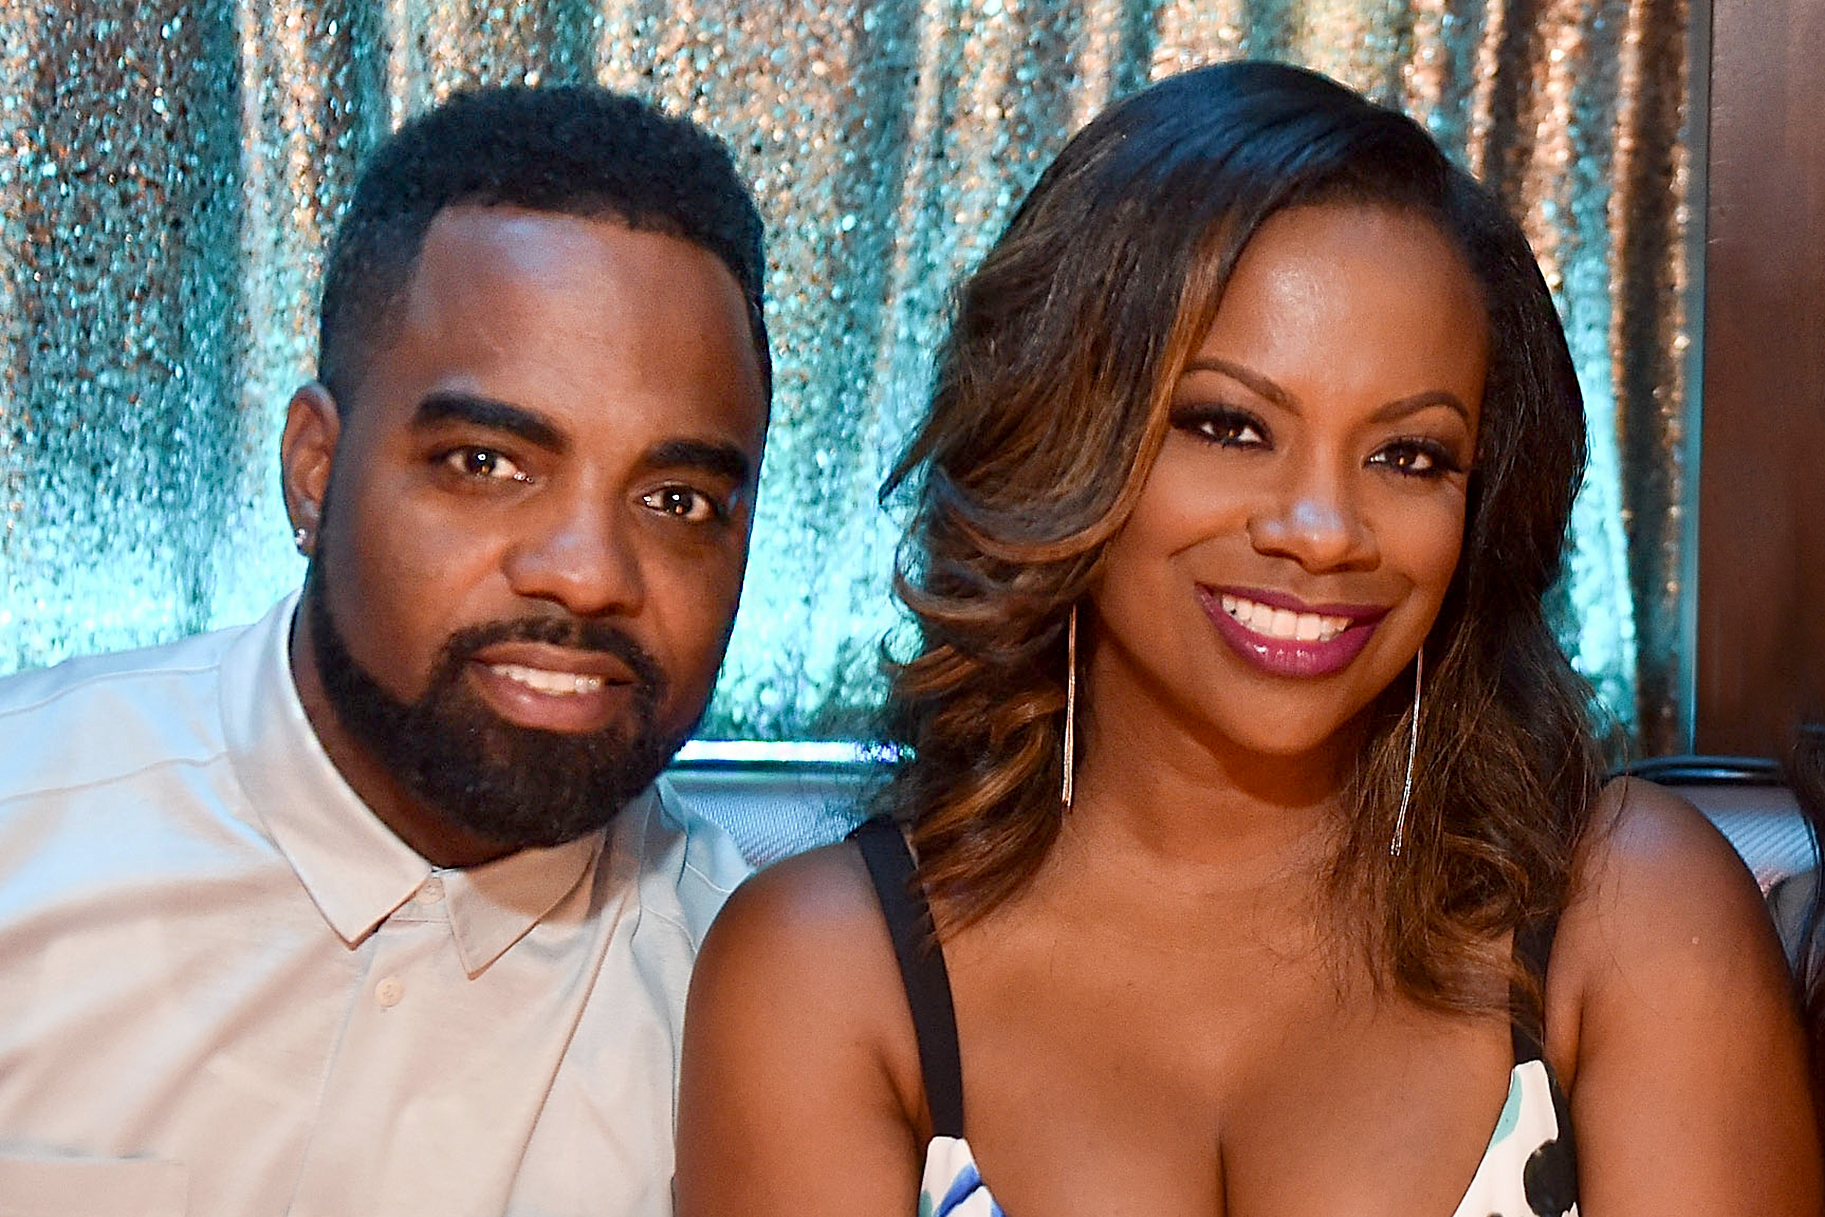 Kandi Burruss Shares A Video With Her Two Favorite Boys - Check Out The Surprise She'll Be Getting